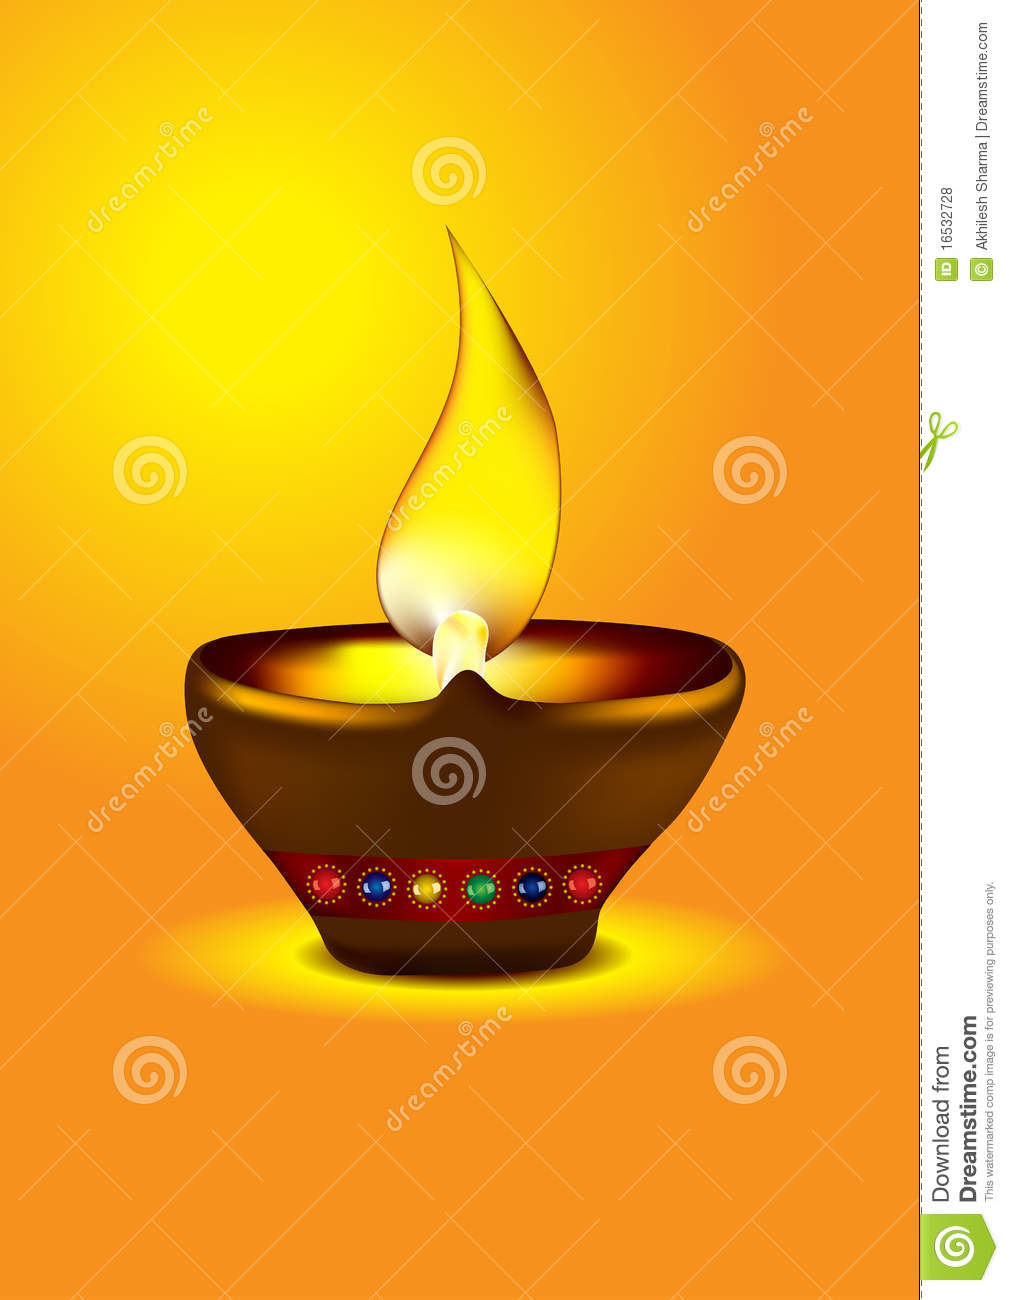 Diwali Diya - Oil lamp